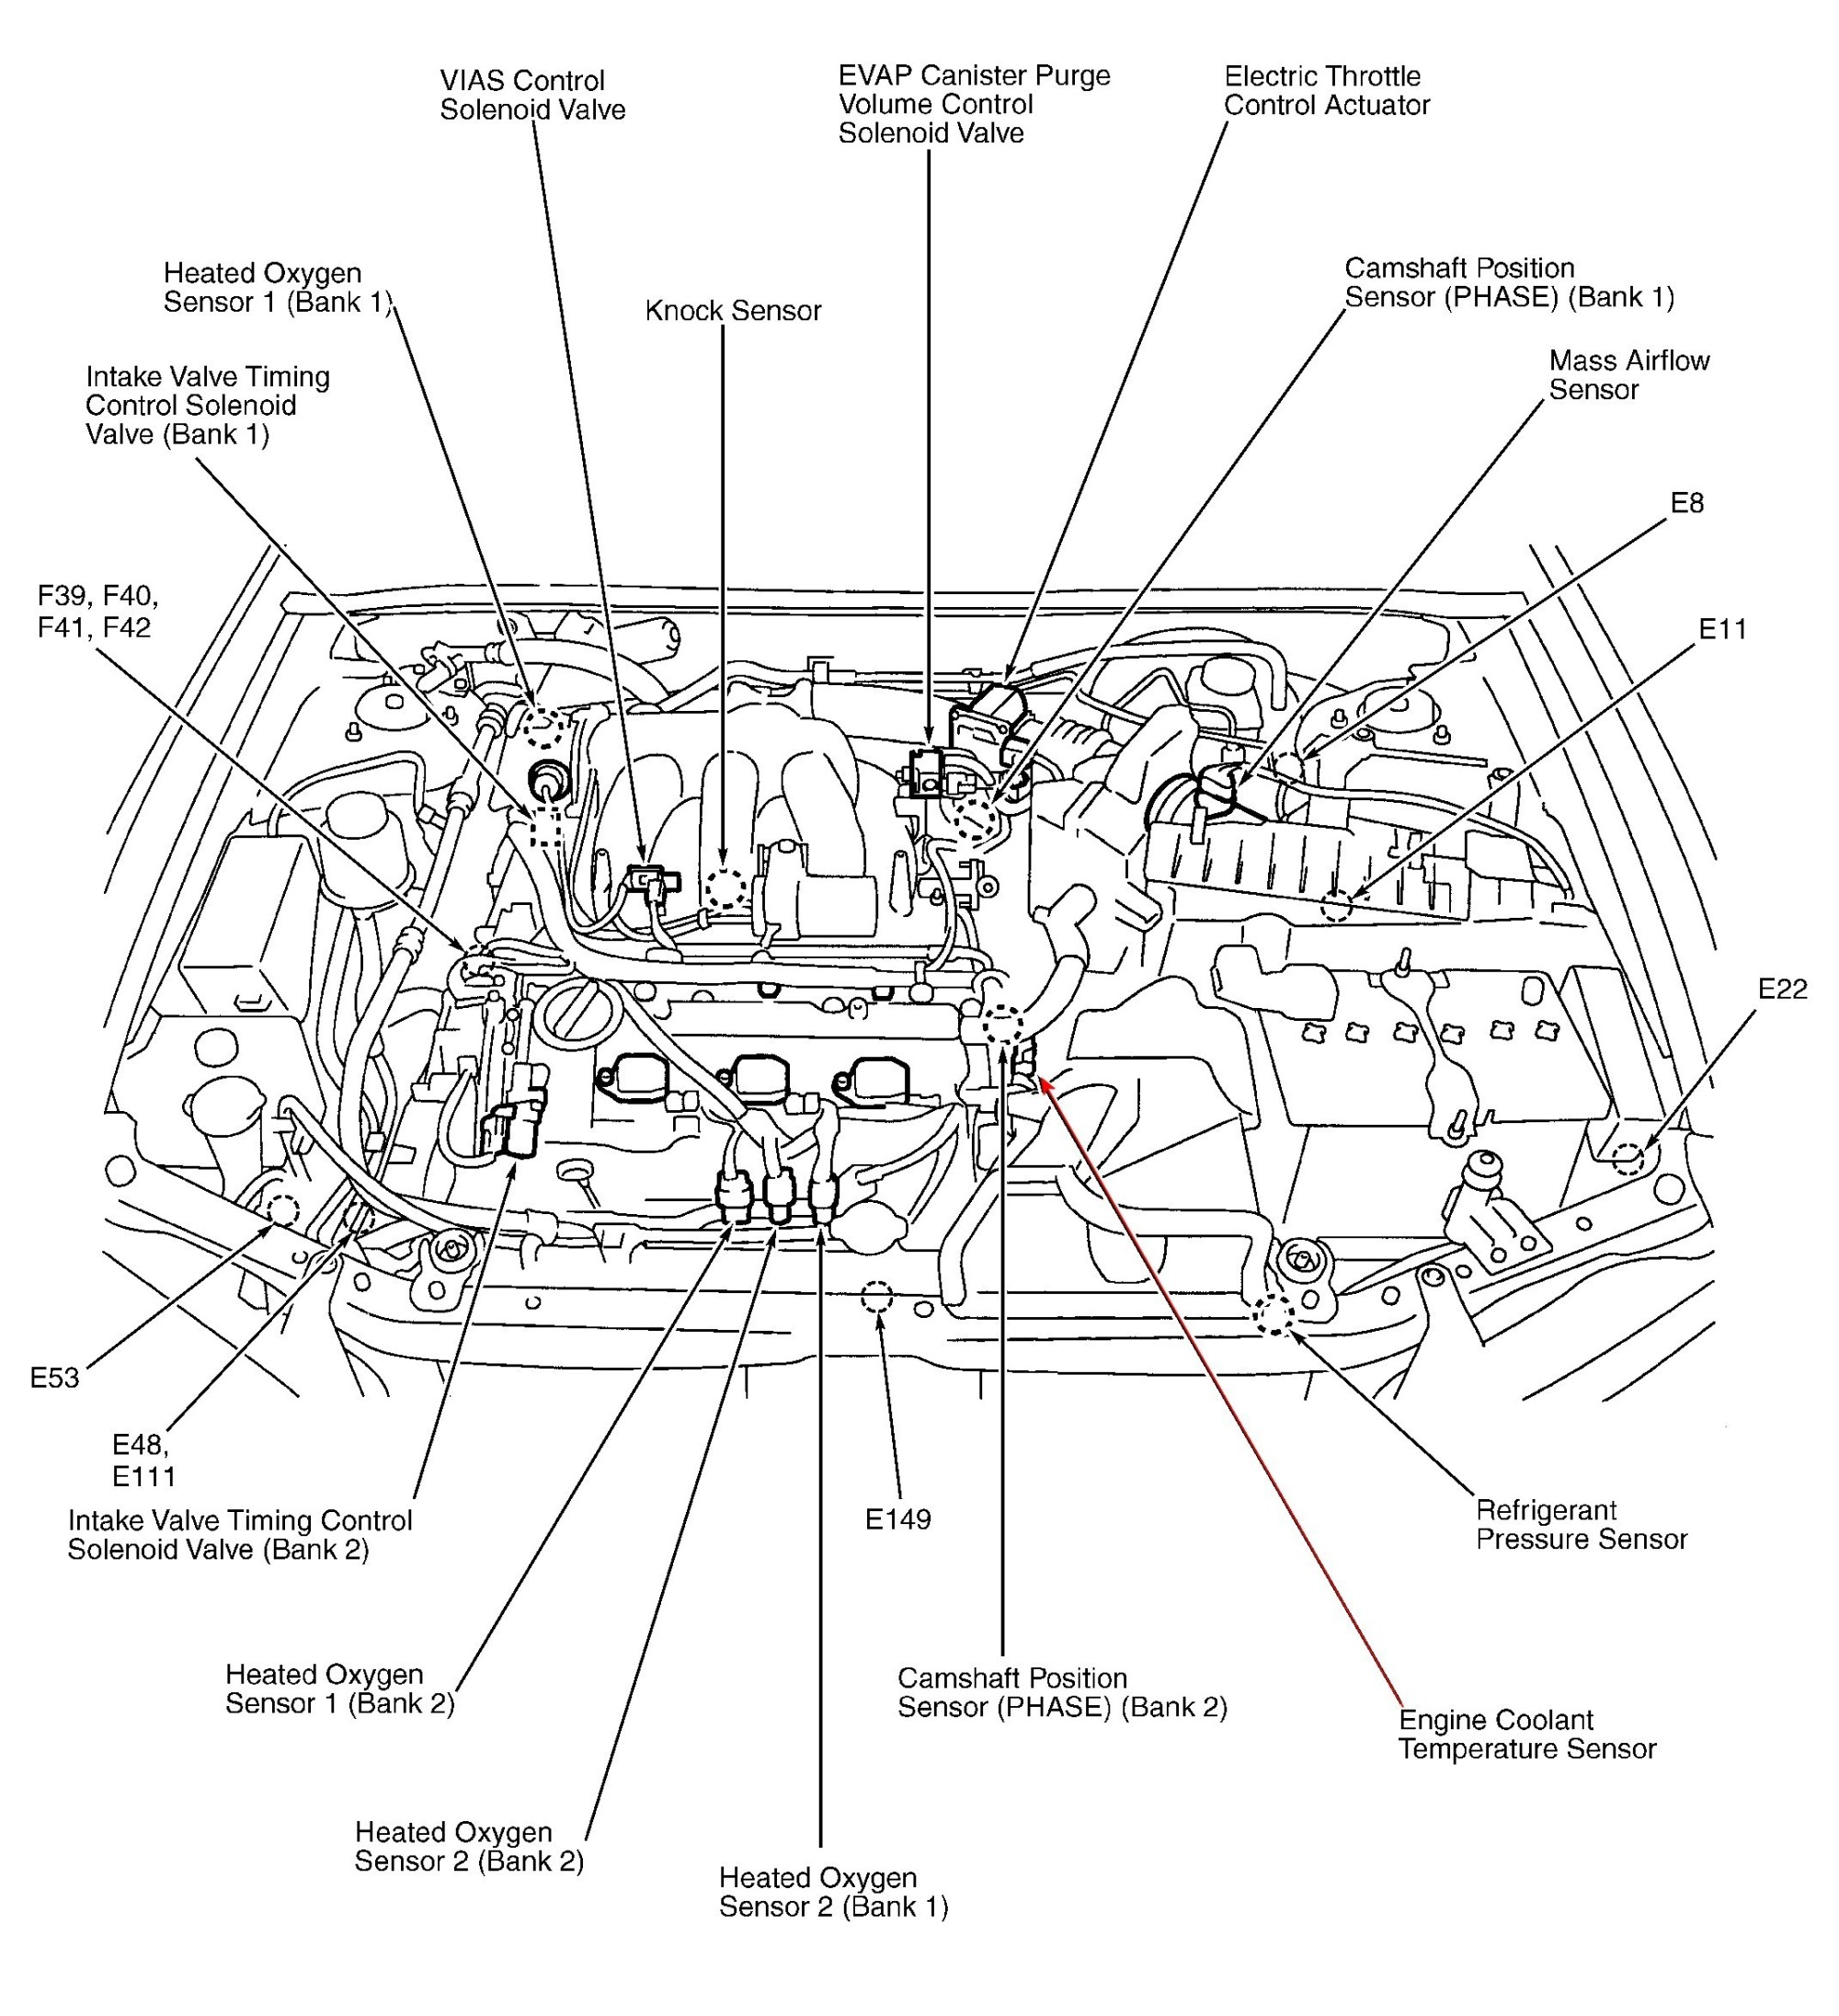 hight resolution of 2006 nissan xterra engine diagram wiring diagram name2010 xterra engine diagram wiring diagram name 2006 nissan